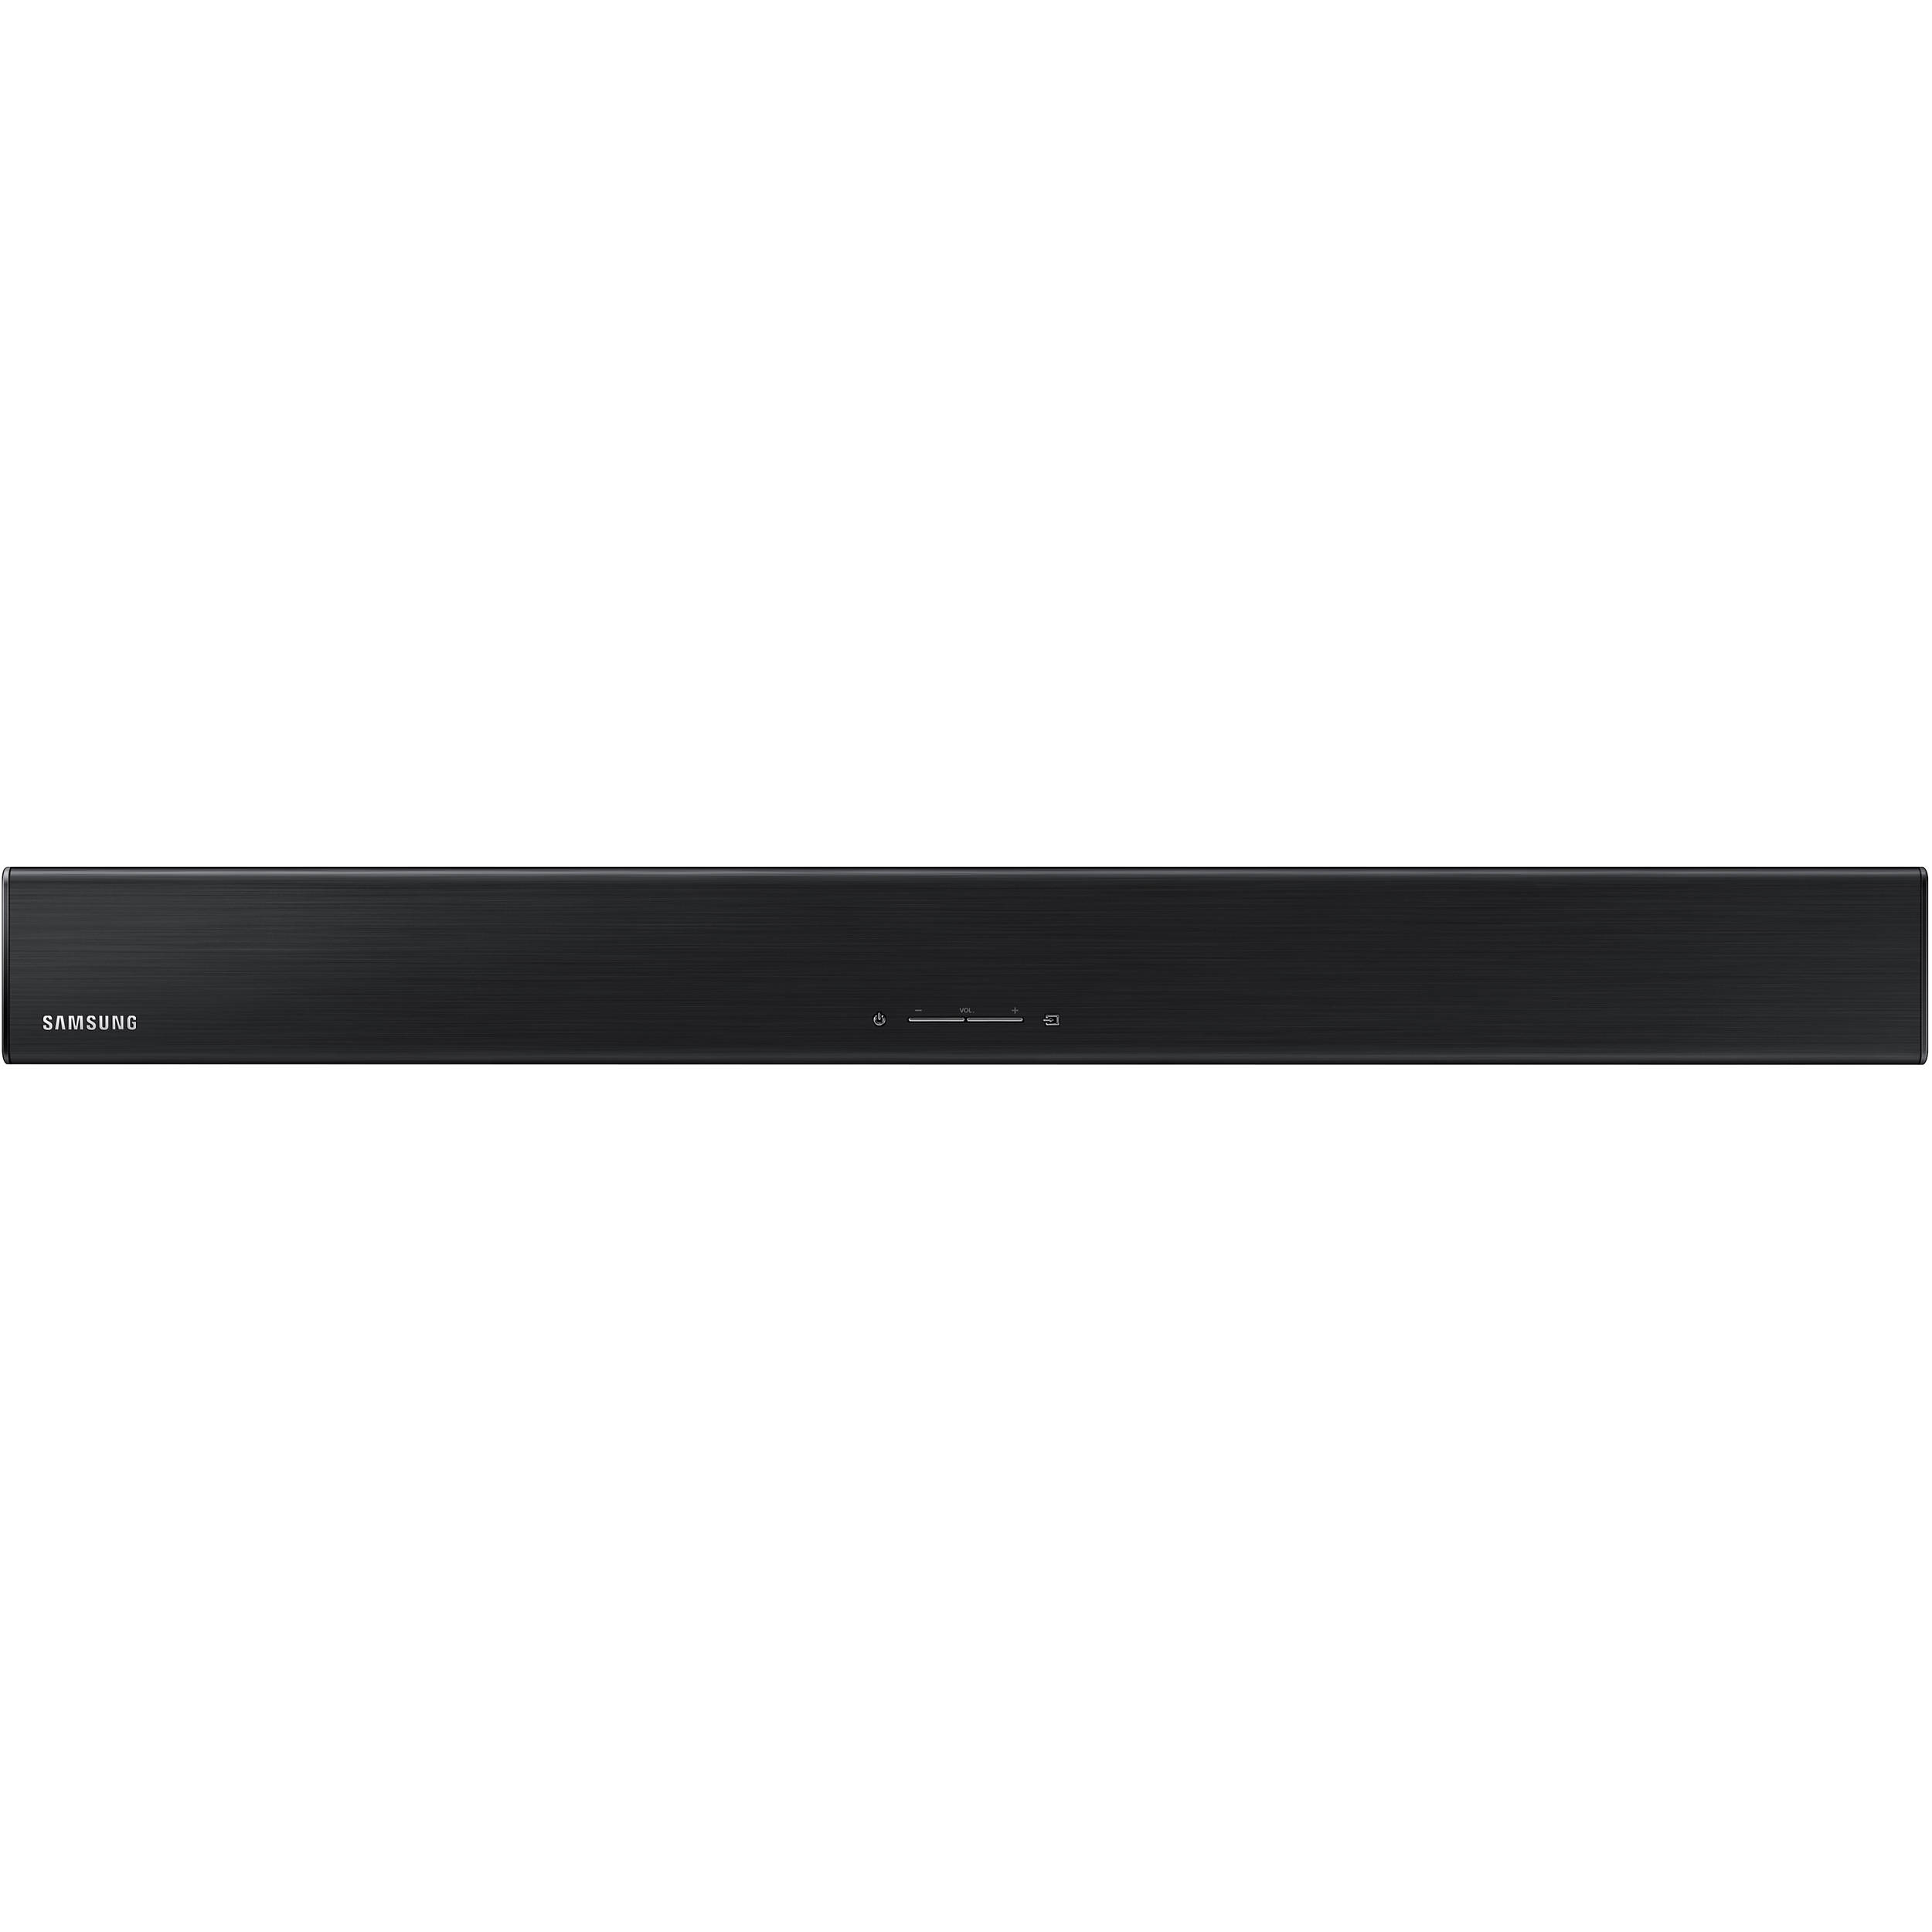 Samsung Hw J250 80w 2 Channel Soundbar Speaker Hw J250 Za B Amp H